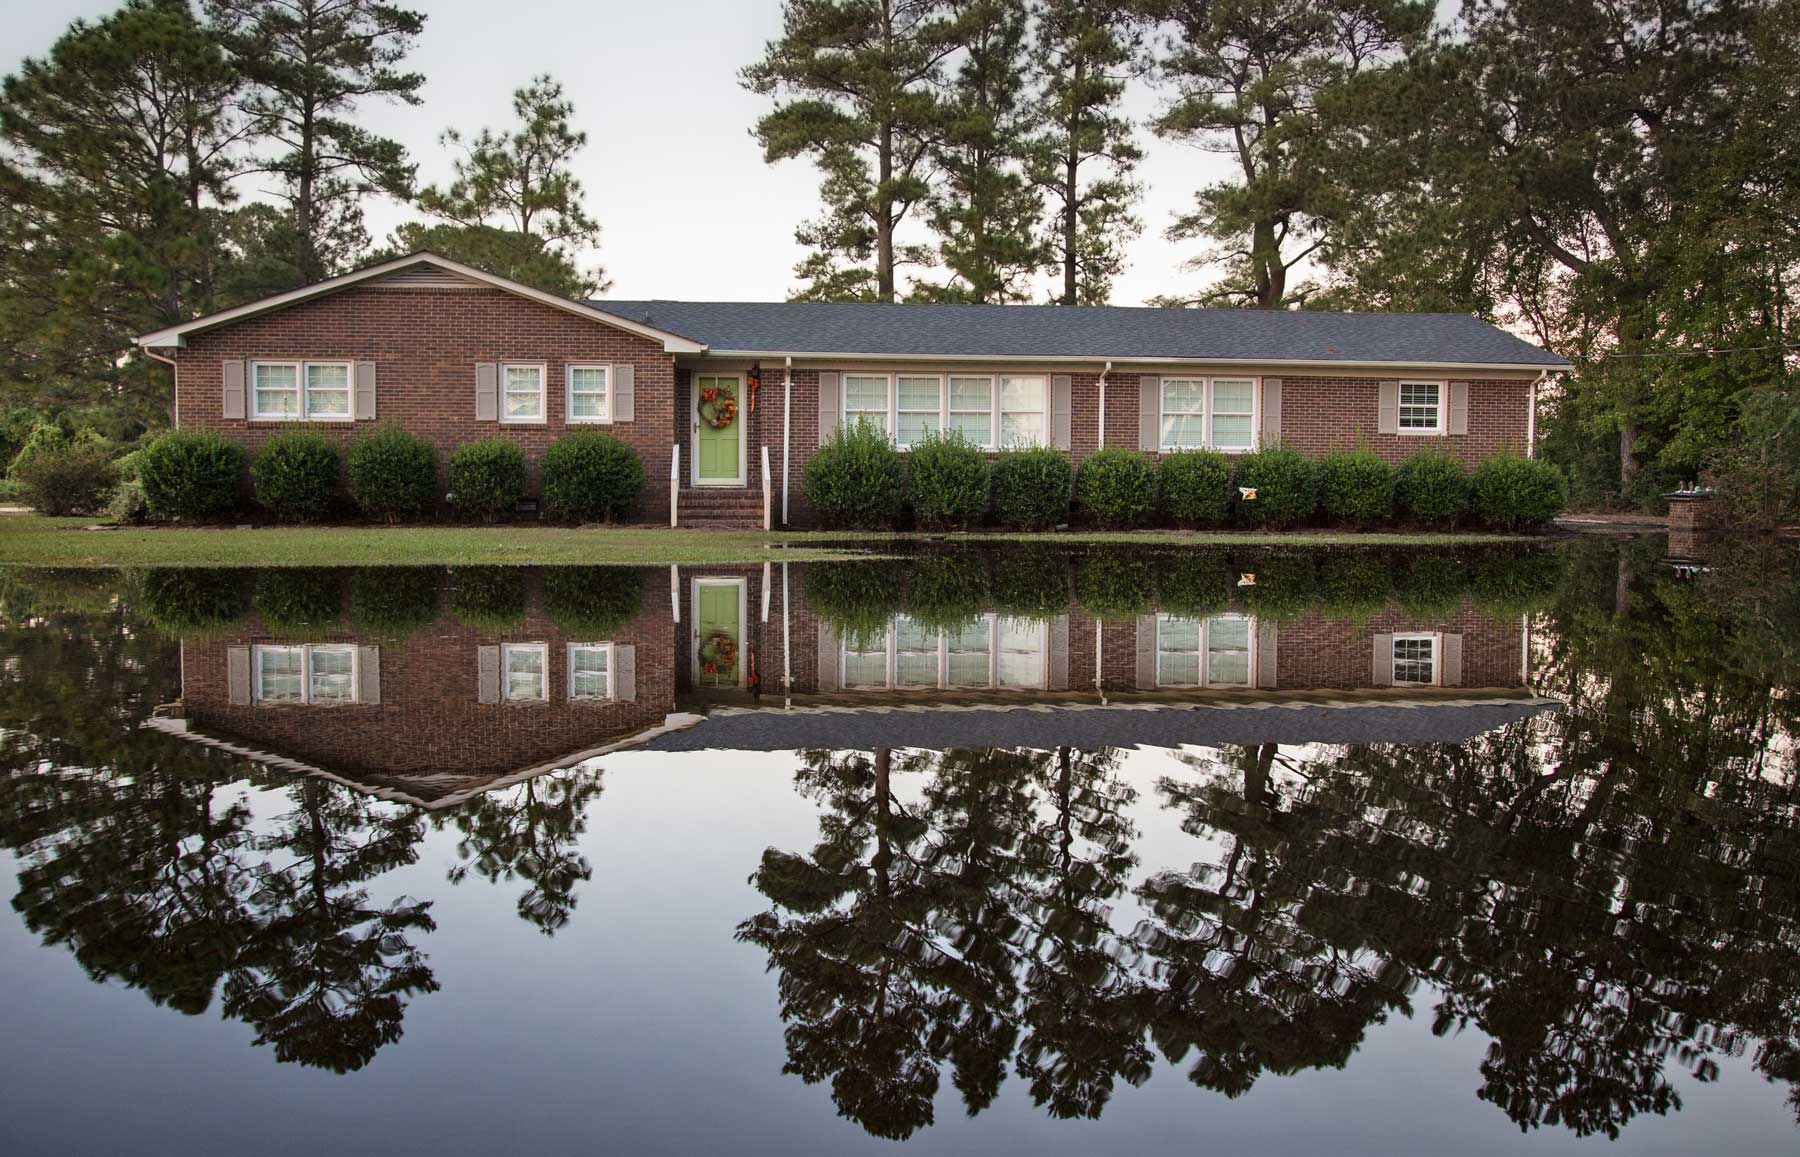 A home in Kinston, N.C. becomes fully visible as water levels recede. (Julie Dermansky)